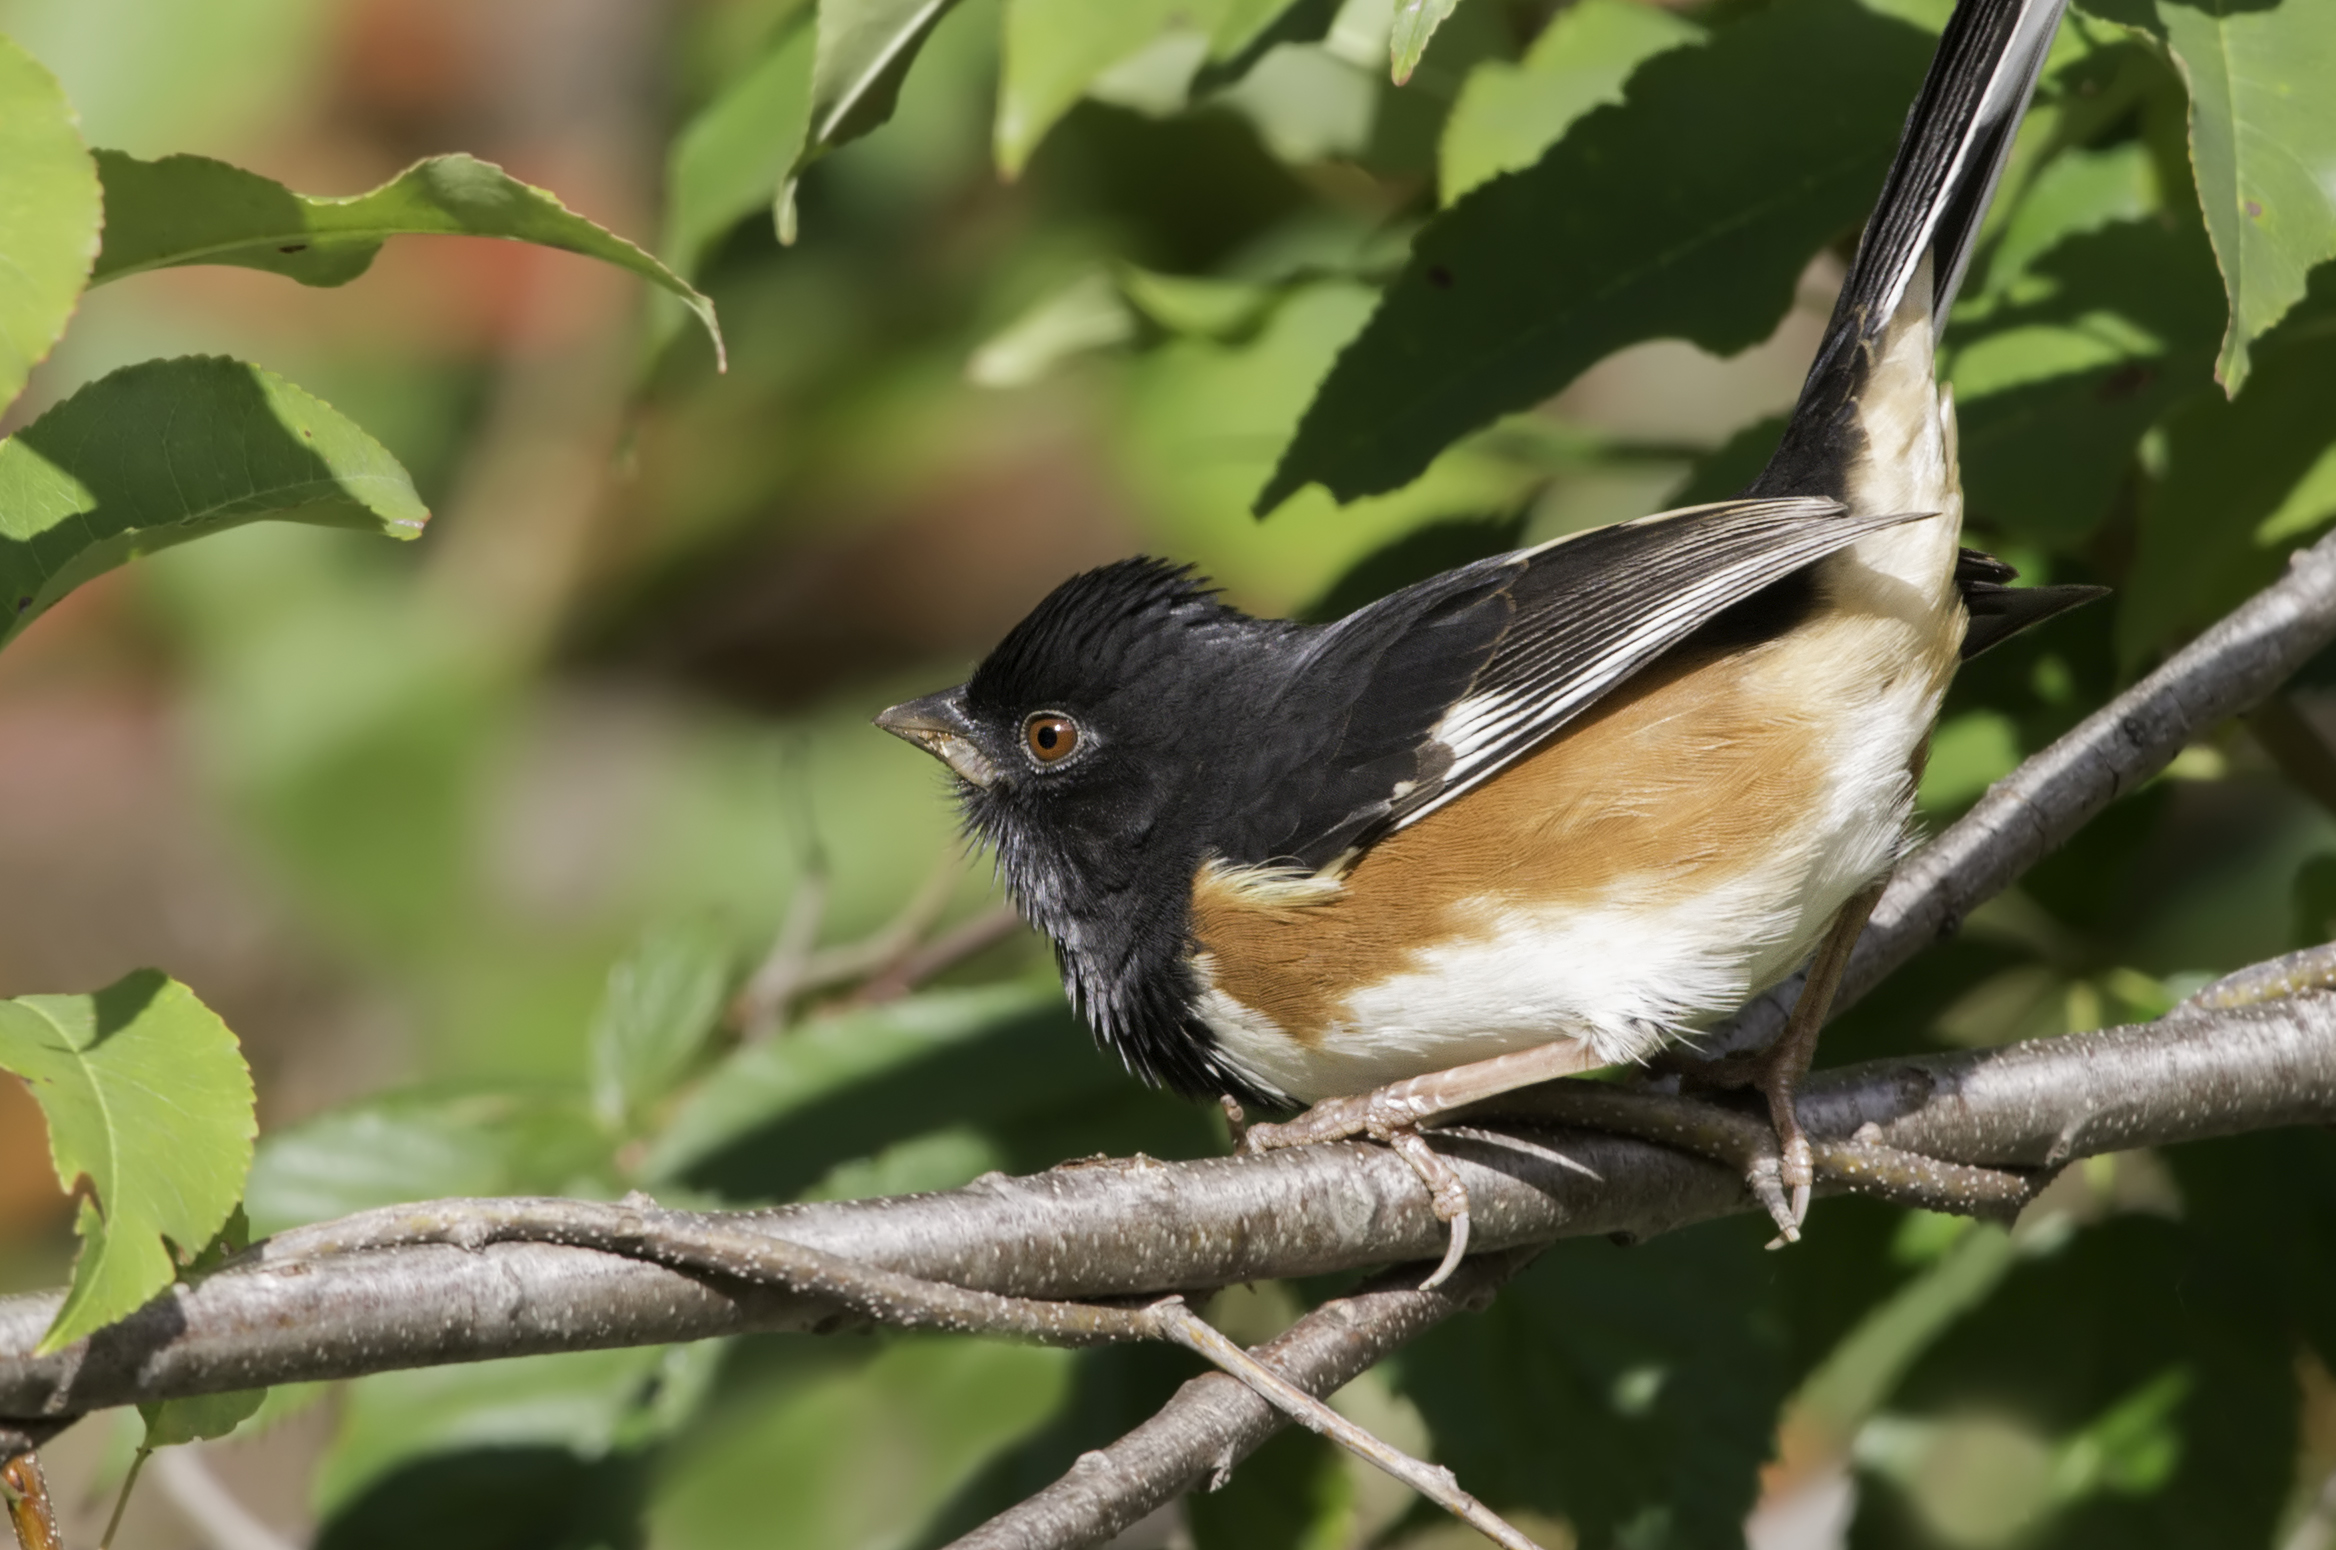 """- Eastern Towhee (Pipilus Erythrophthalmus)Eastern Towhees live mainly in the understory of forests and spend much of their time on the ground. Their diet consists of berries, seeds, insects, and other invertebrates. They have a wingspan of 7.9-11 in. and weigh 1.1-1.8 oz. Formerly known as """"Rufous-sided Towhees,"""" Eastern Towhees were categorized with Spotted Towhees. Eastern Towhees make a very noticeable call that says """"Drink your tea, drink your tea."""" They are protected on the US Migratory Bird lists."""